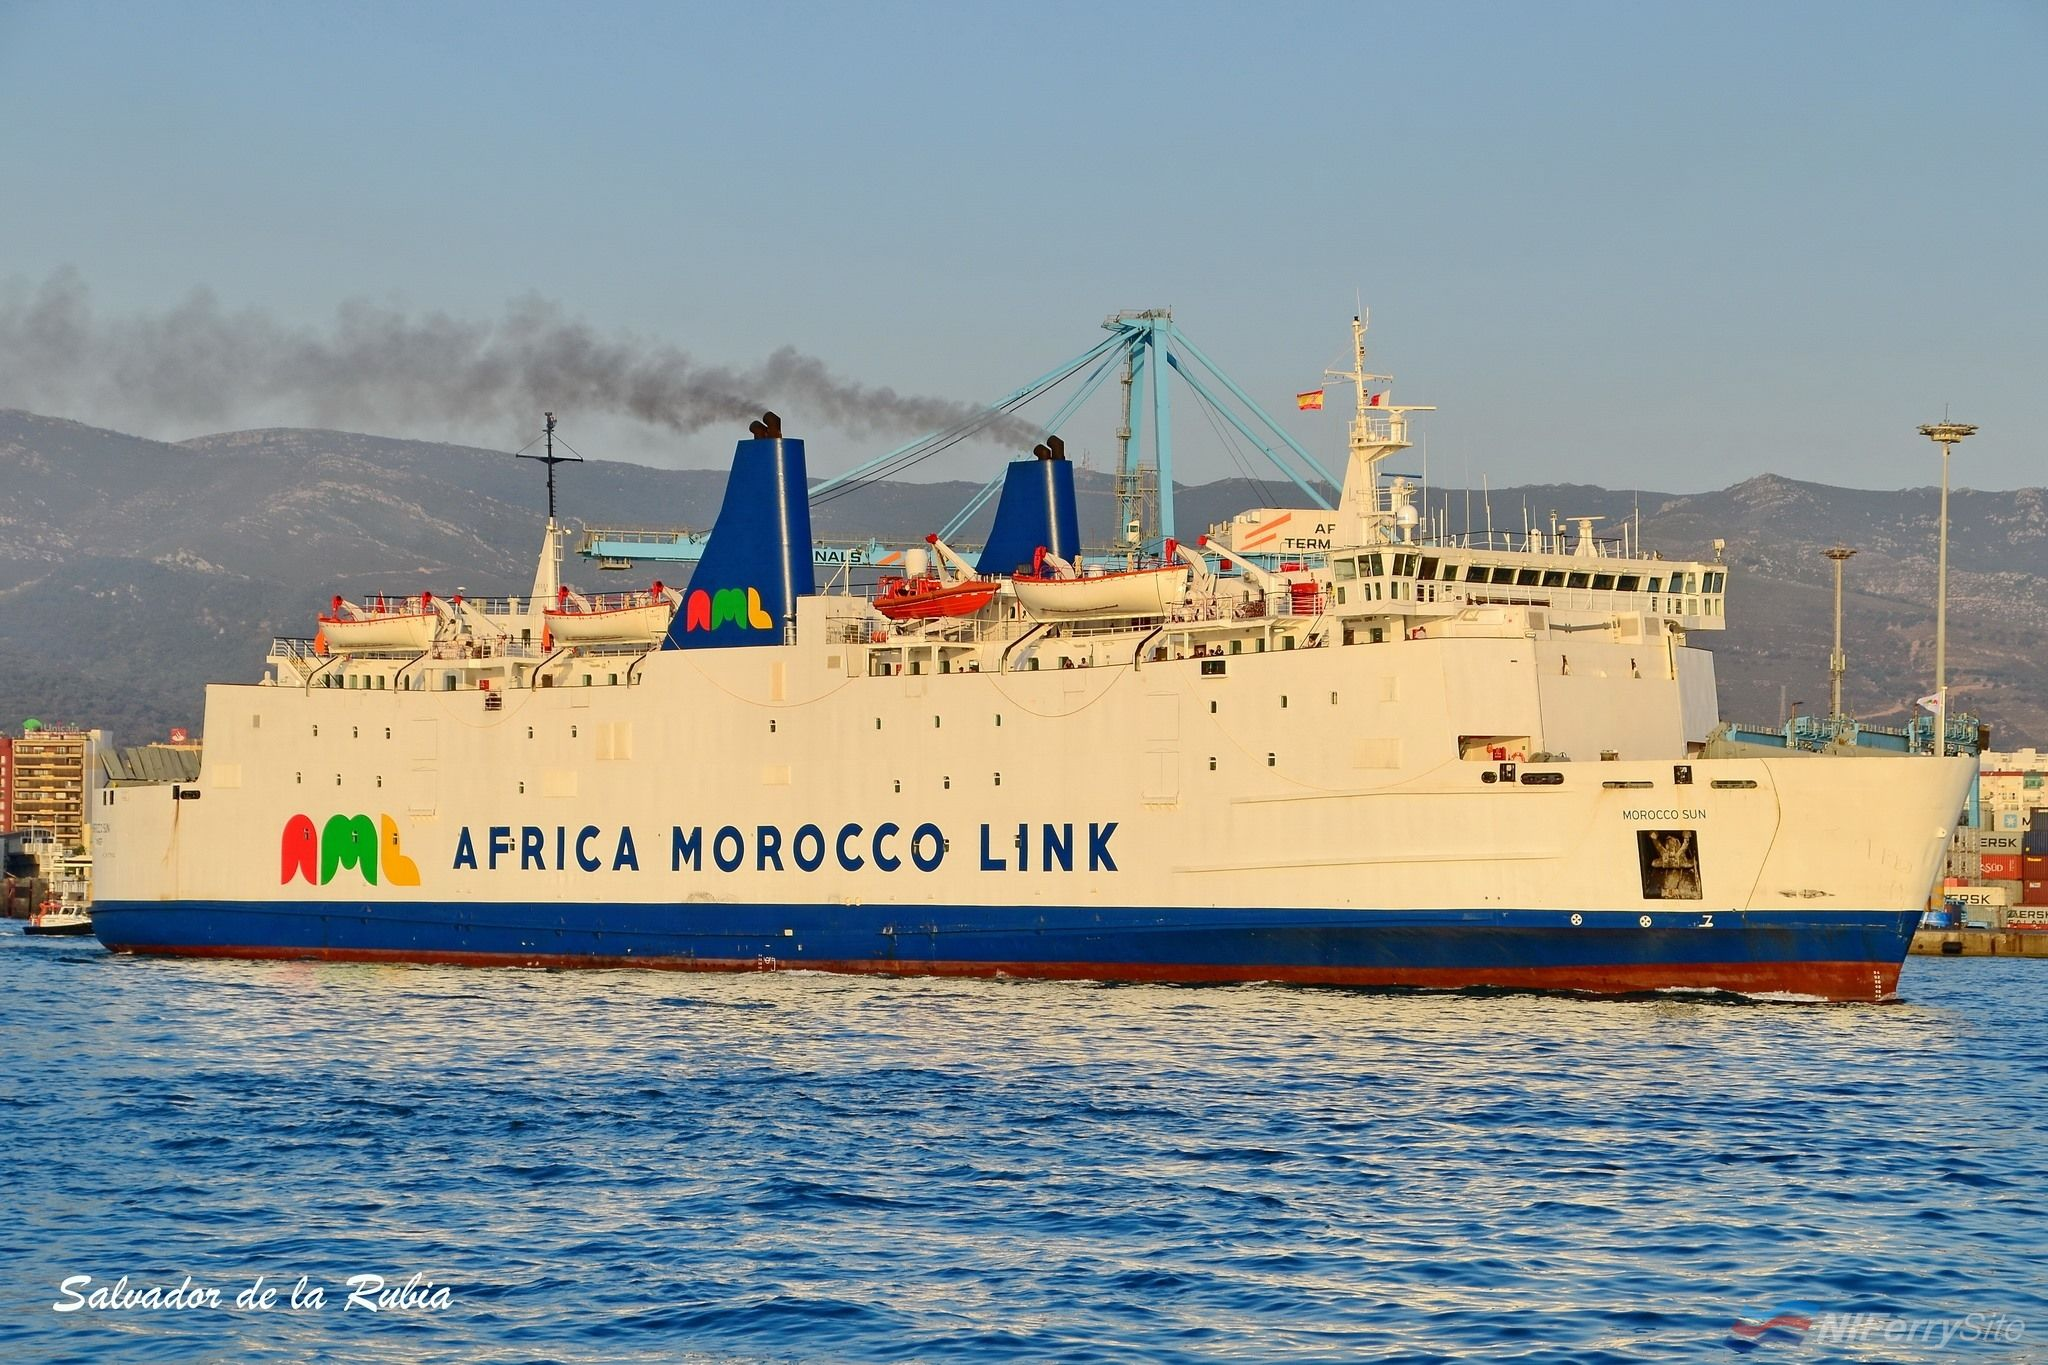 MOROCCO SUN seen in Algeciras on her first day back in service, 03.08.19. The former LE RIF, STENA GALLOWAY, etc had last seen service as an IMTC vessel in 2013. Copyright © Salvador de la Rubia.